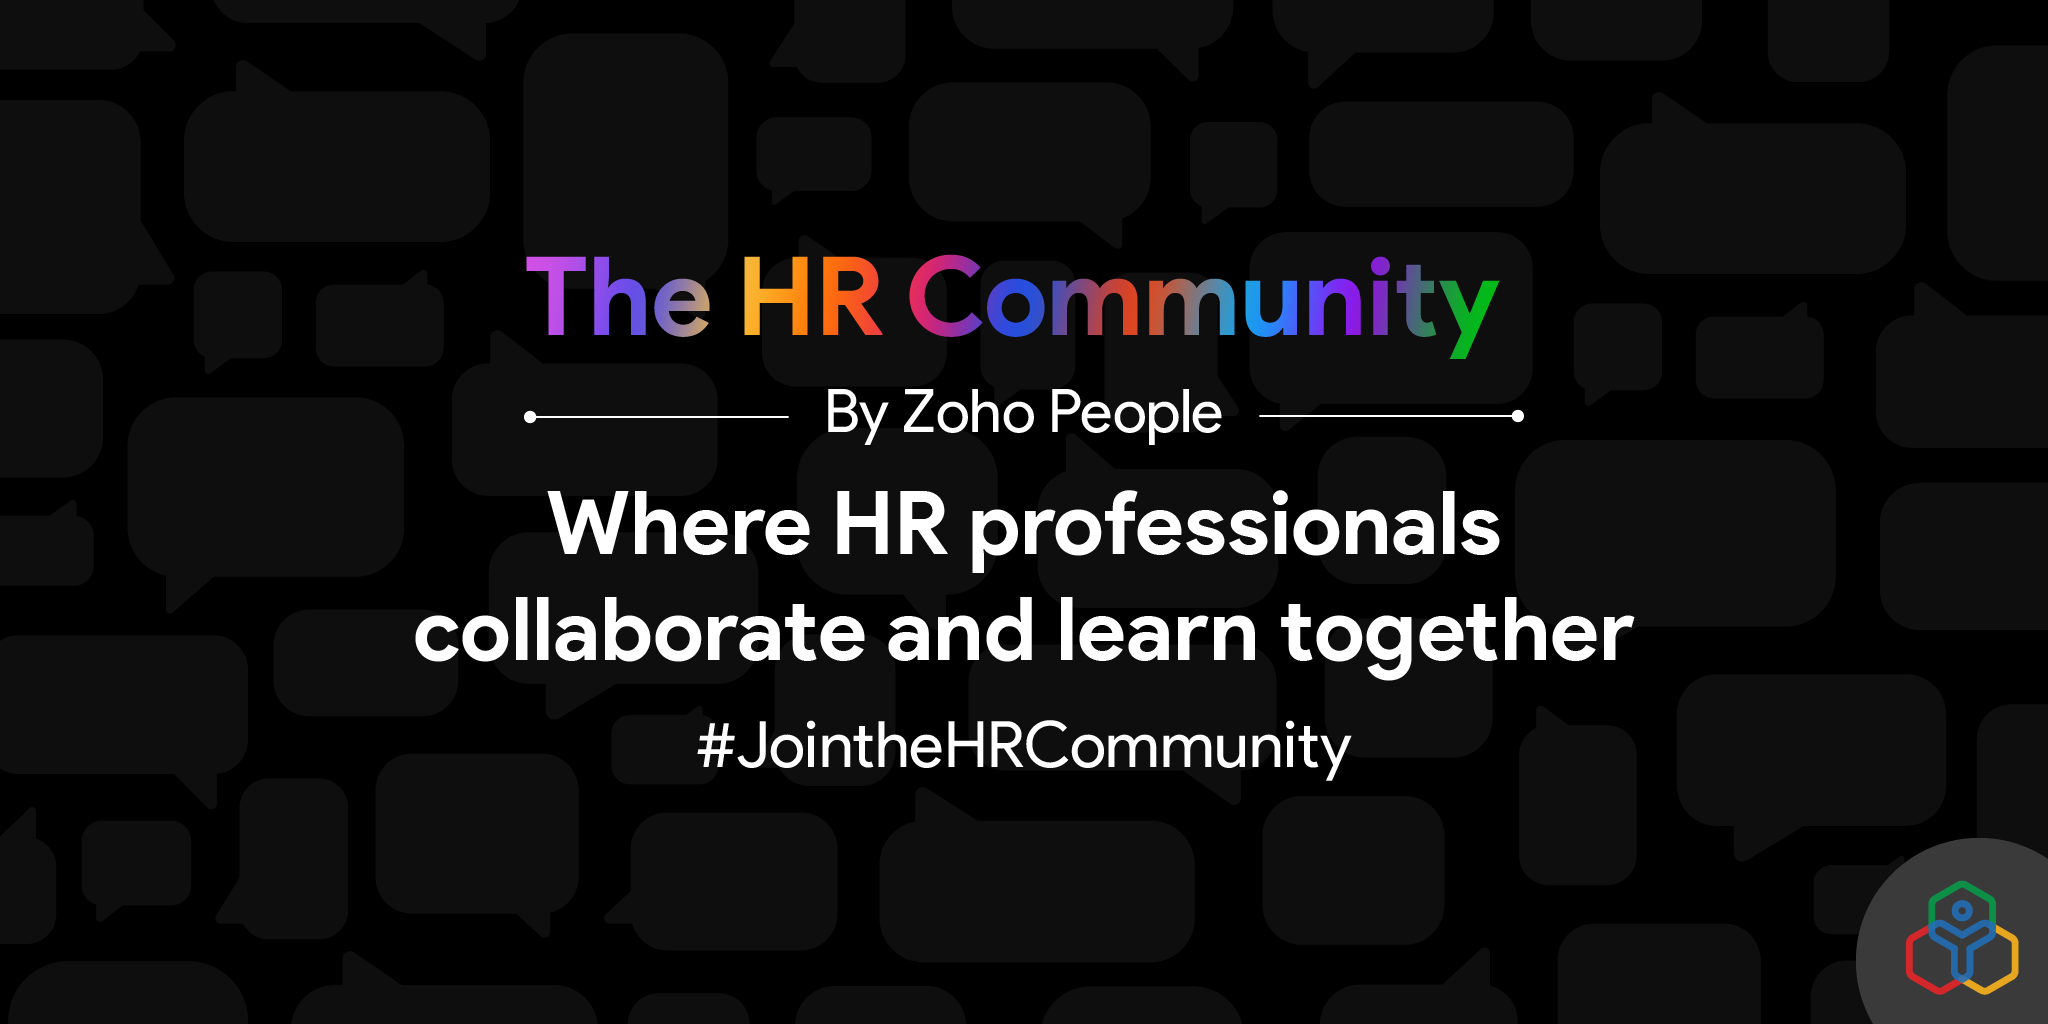 HR Community by Zoho People